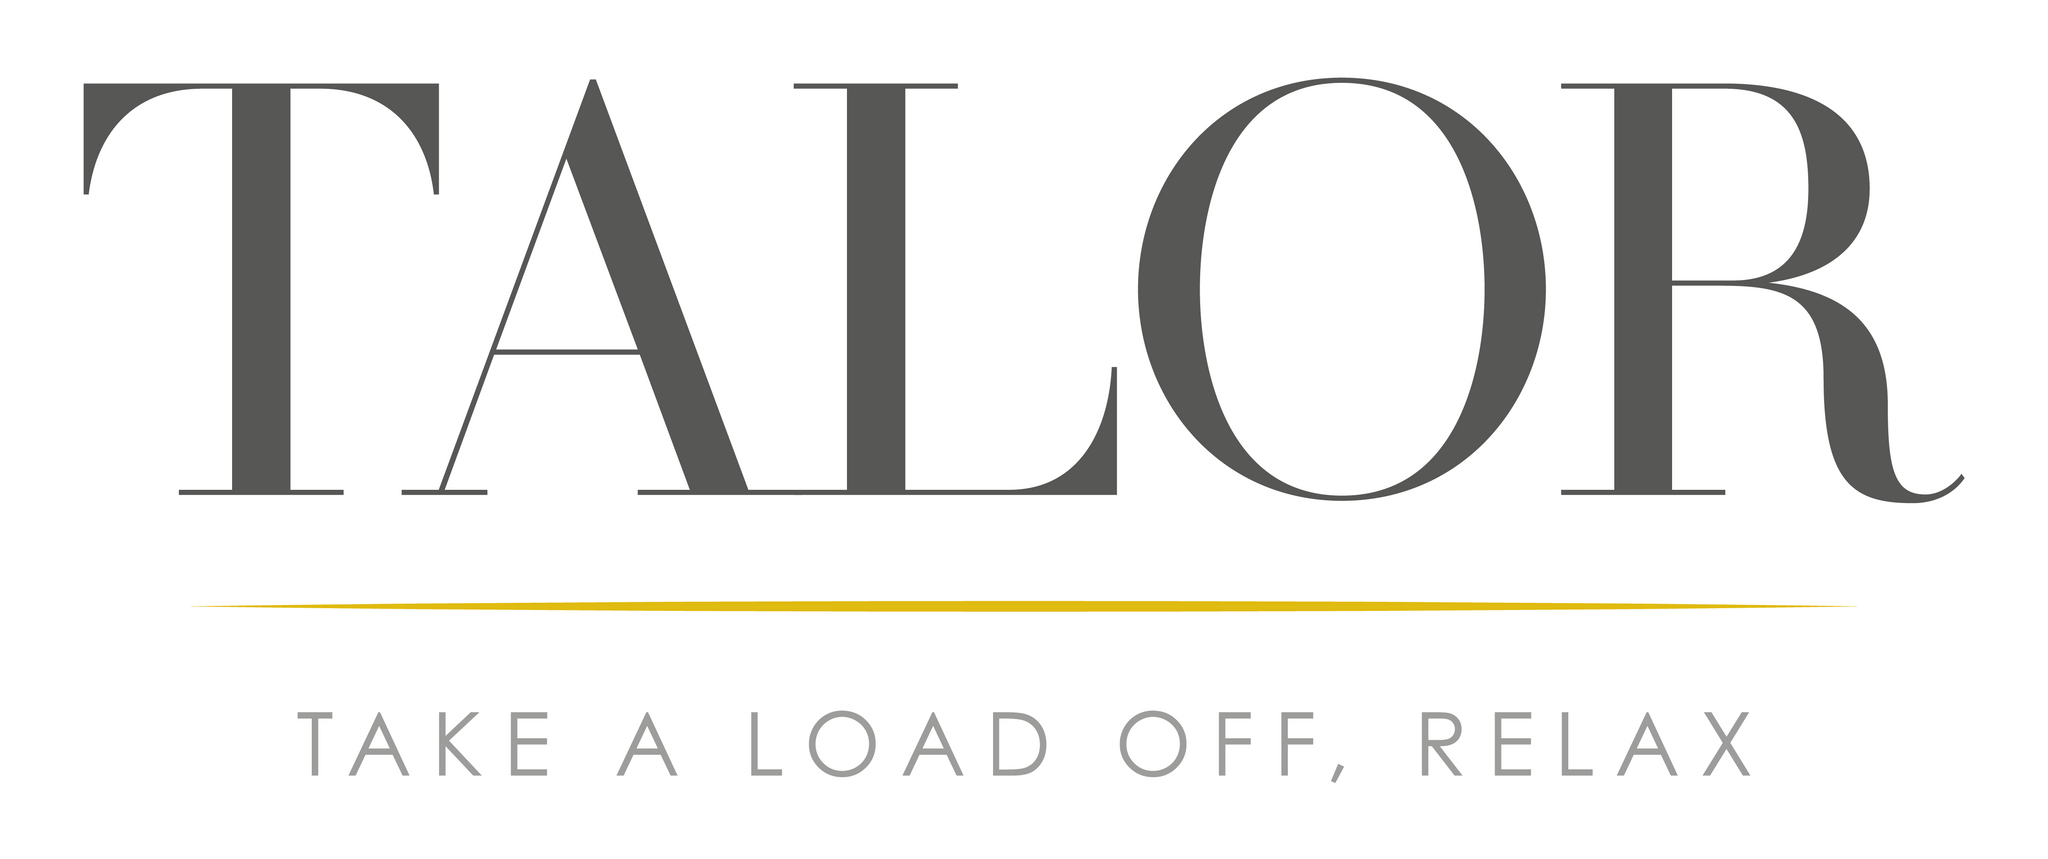 TALOR - TAKE A LOAD OFF, RELAX